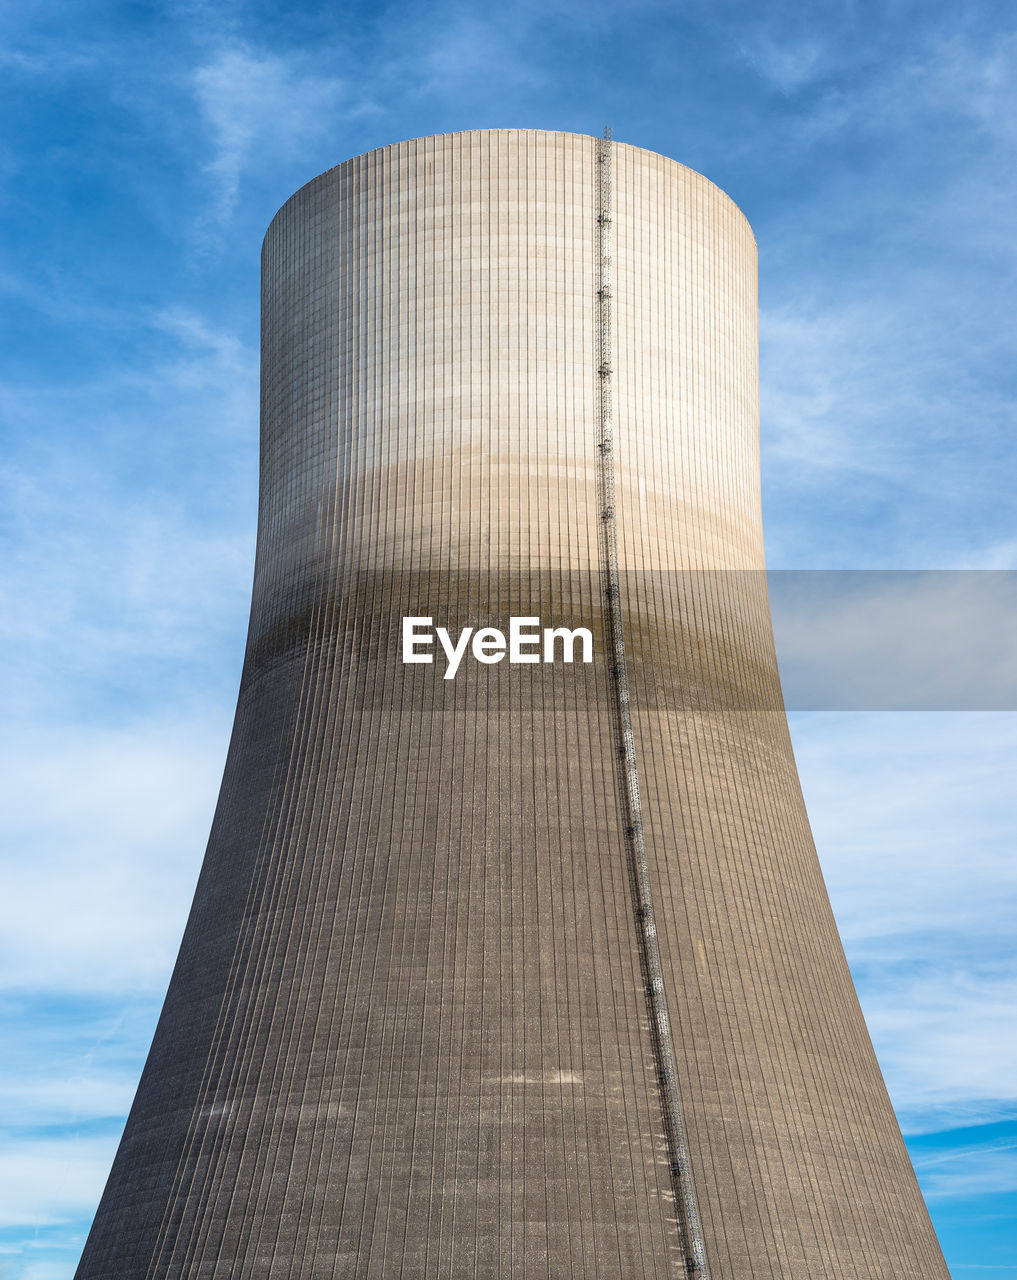 A huge chimney of a nuclear power plant close up on a background of blue sky with clouds.